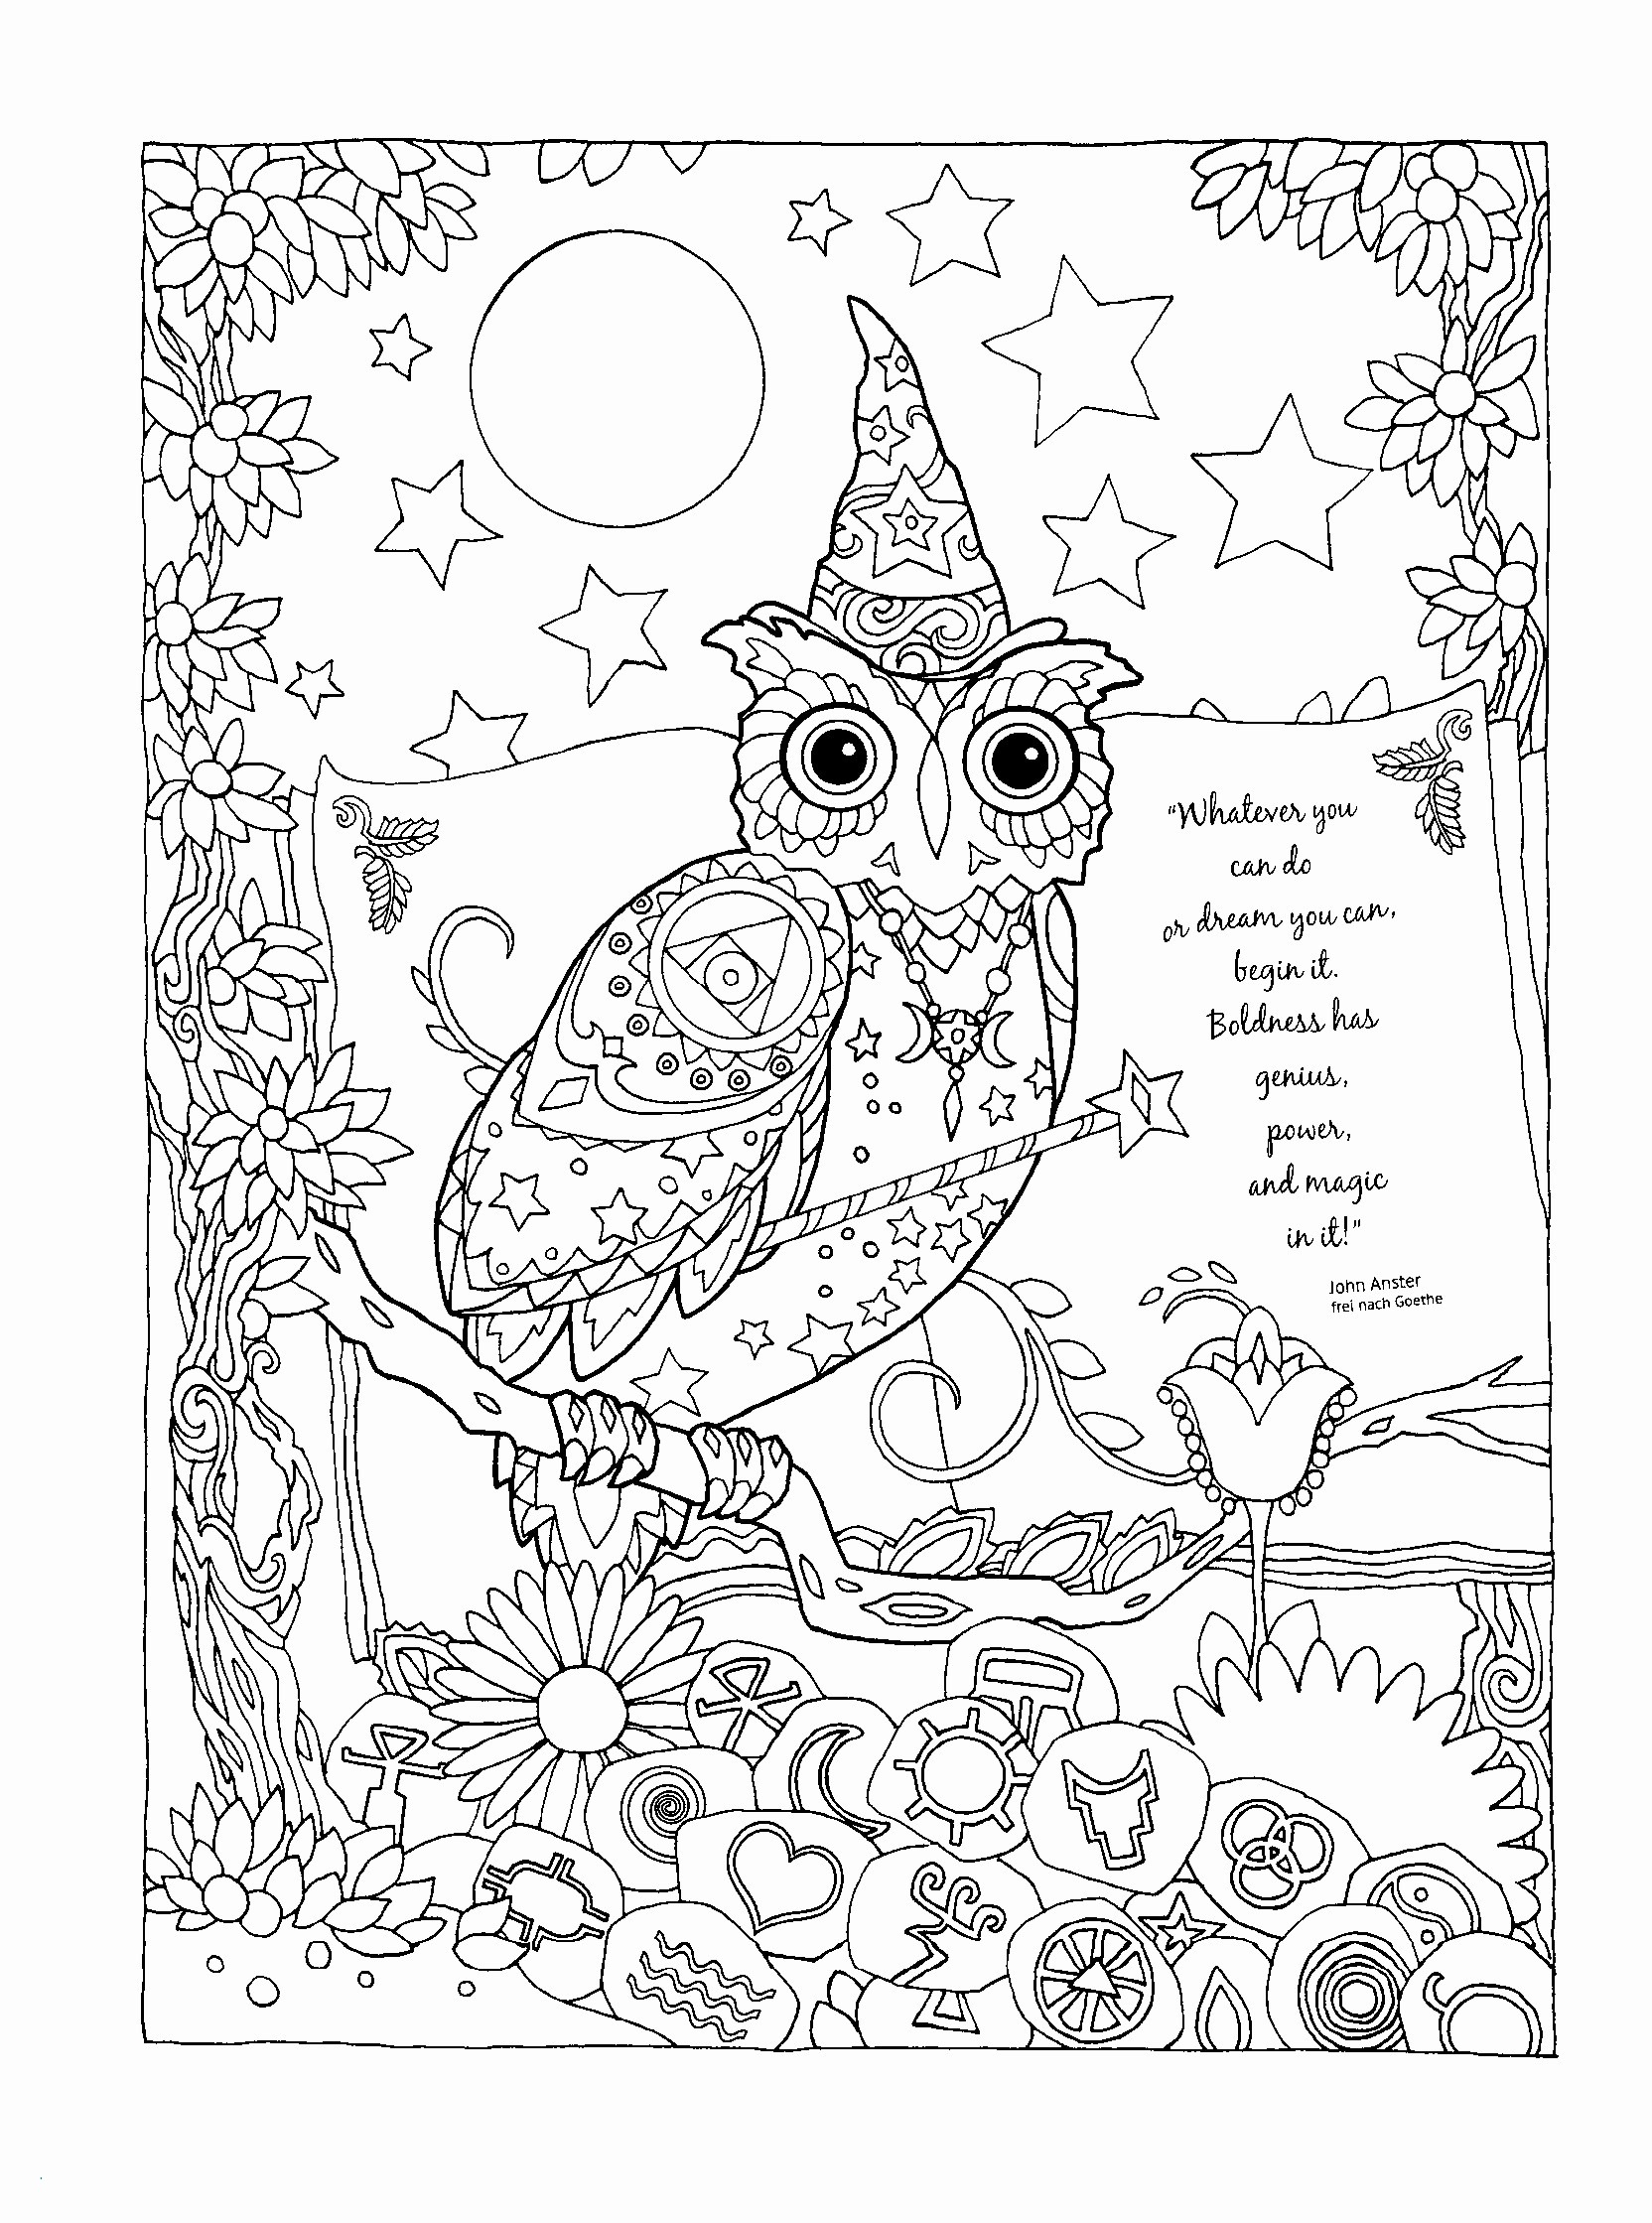 color by letters coloring pages Download-Color by Letter Pages 11-m